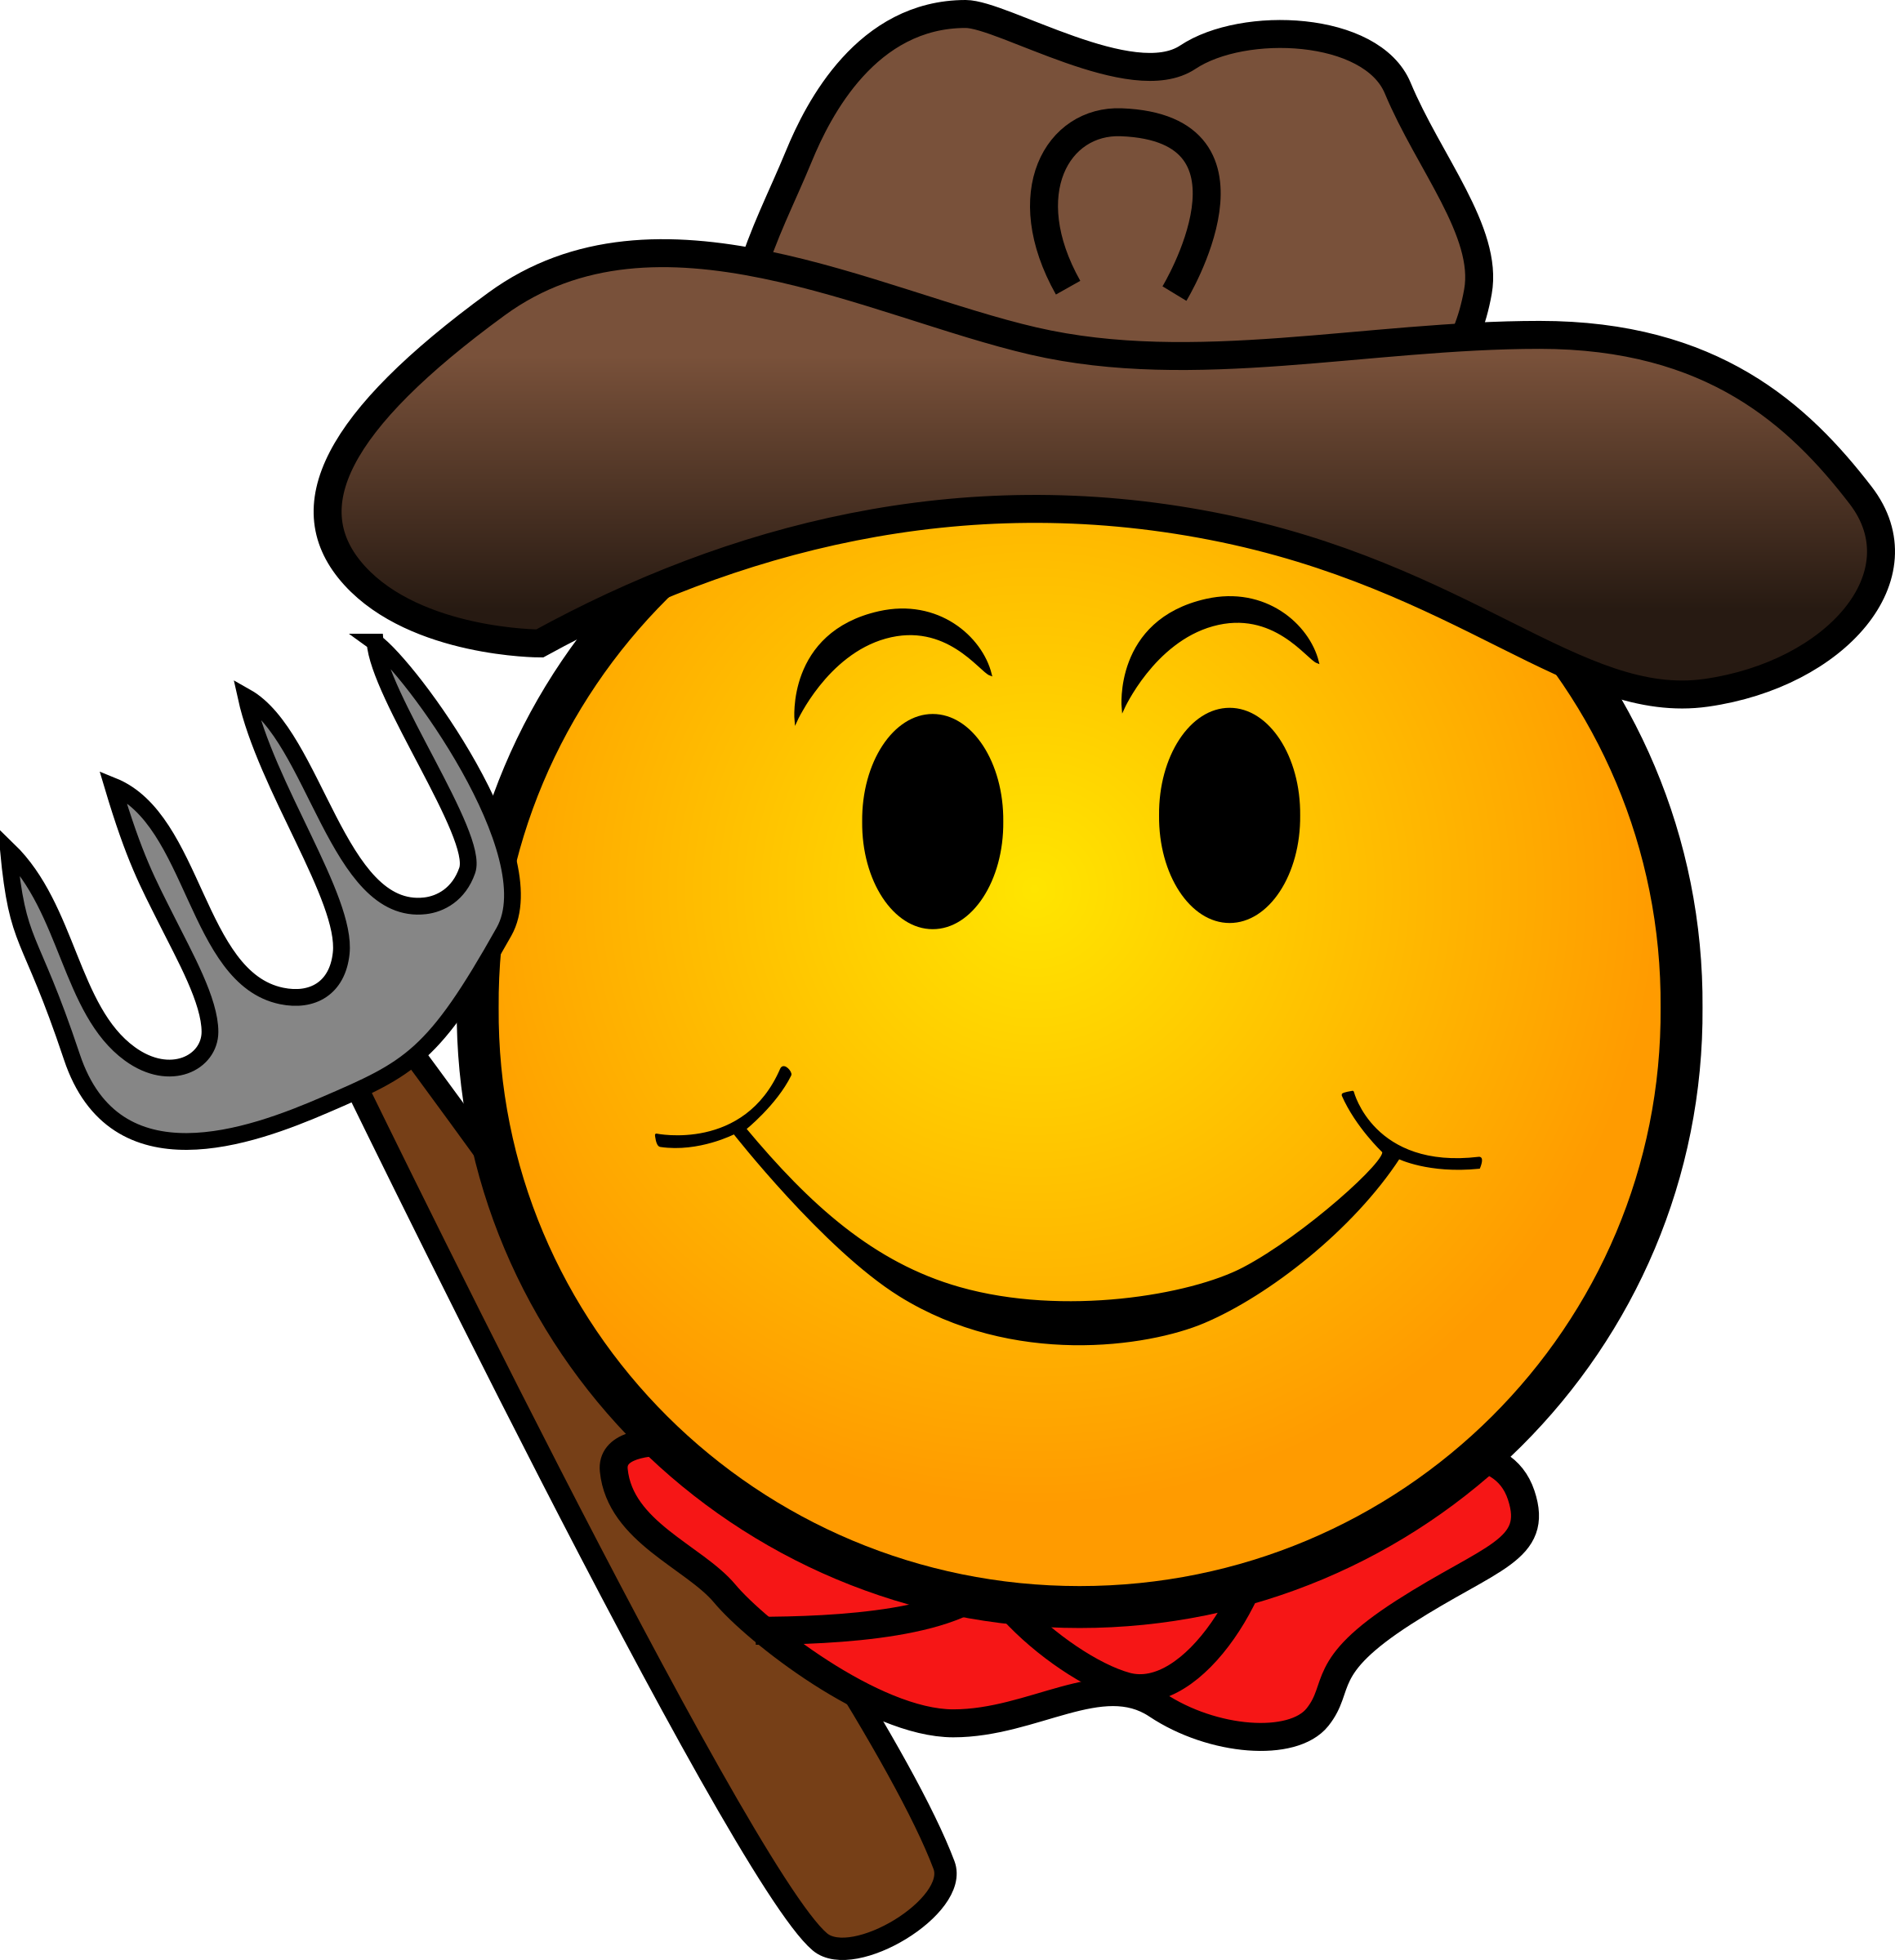 jpg royalty free Farmer smiley big image. Whip clipart emoticon